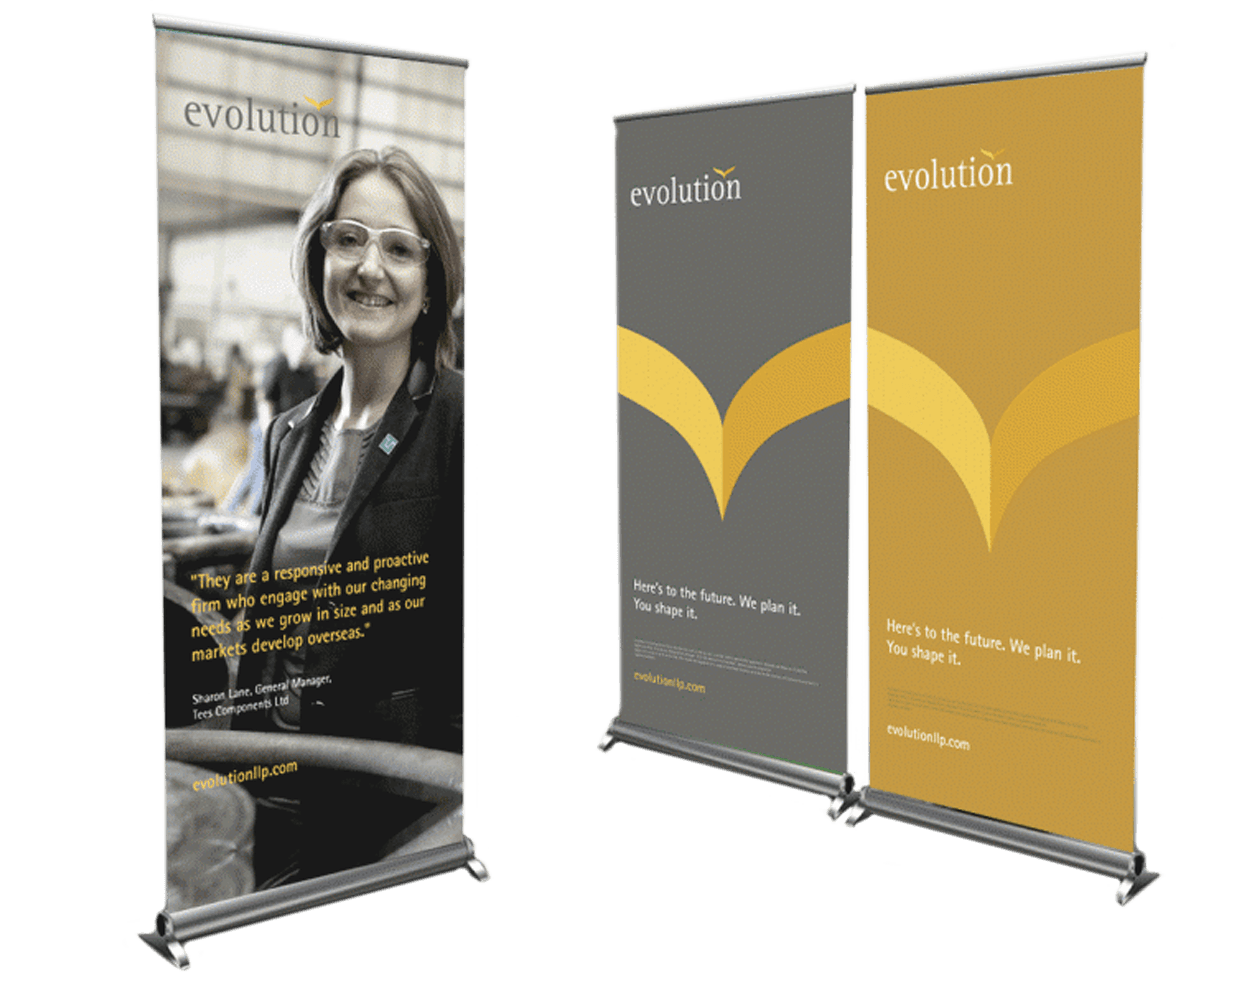 Conference and Exhibition Design